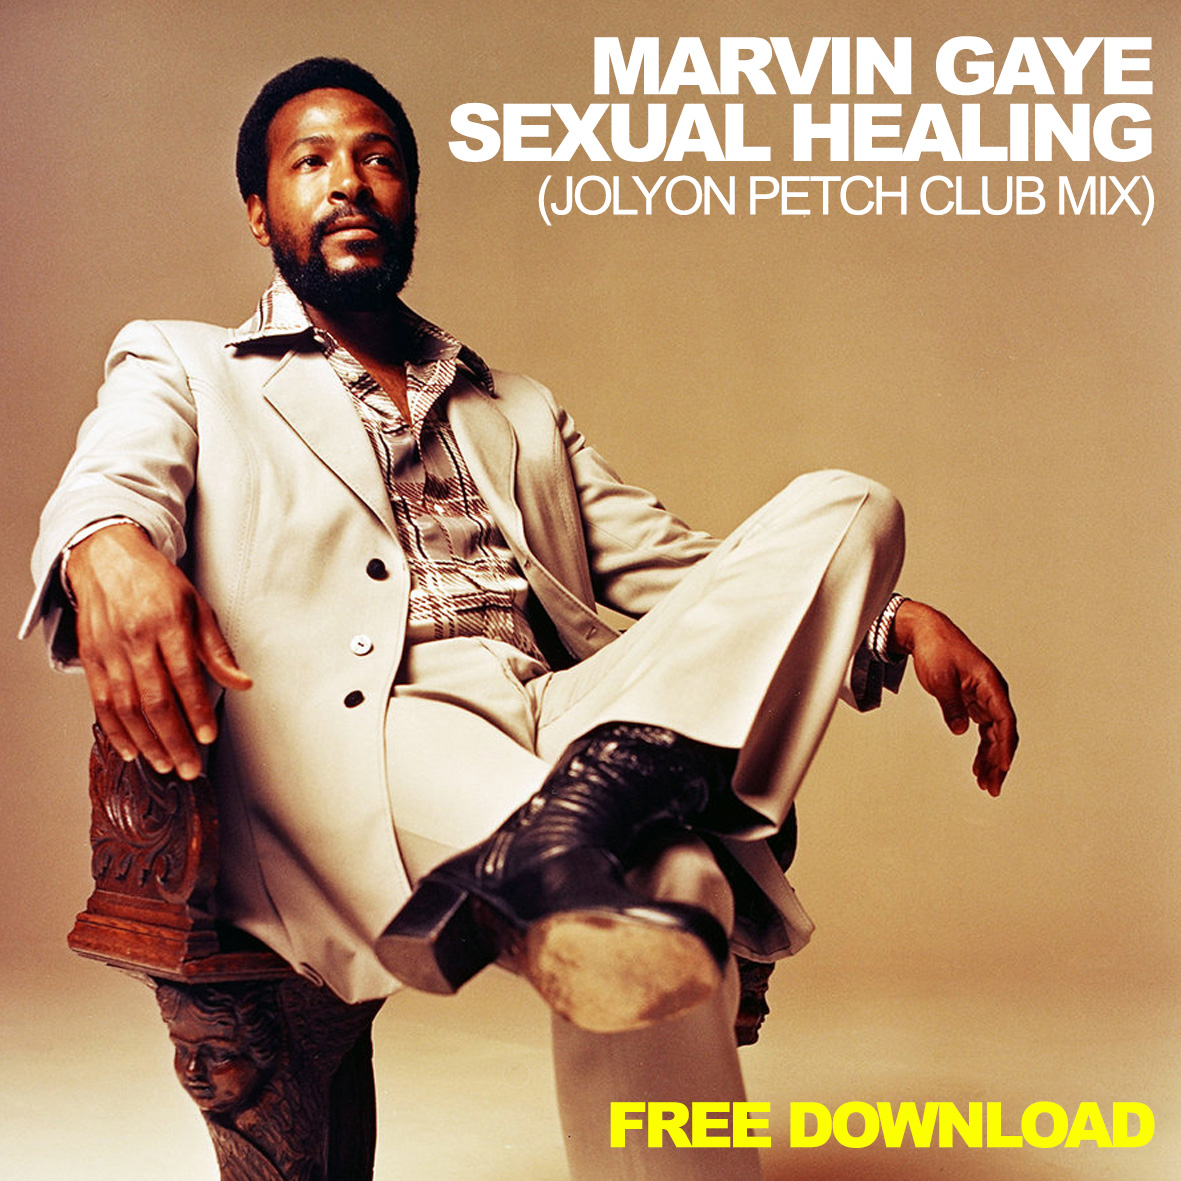 Sexual healing album download